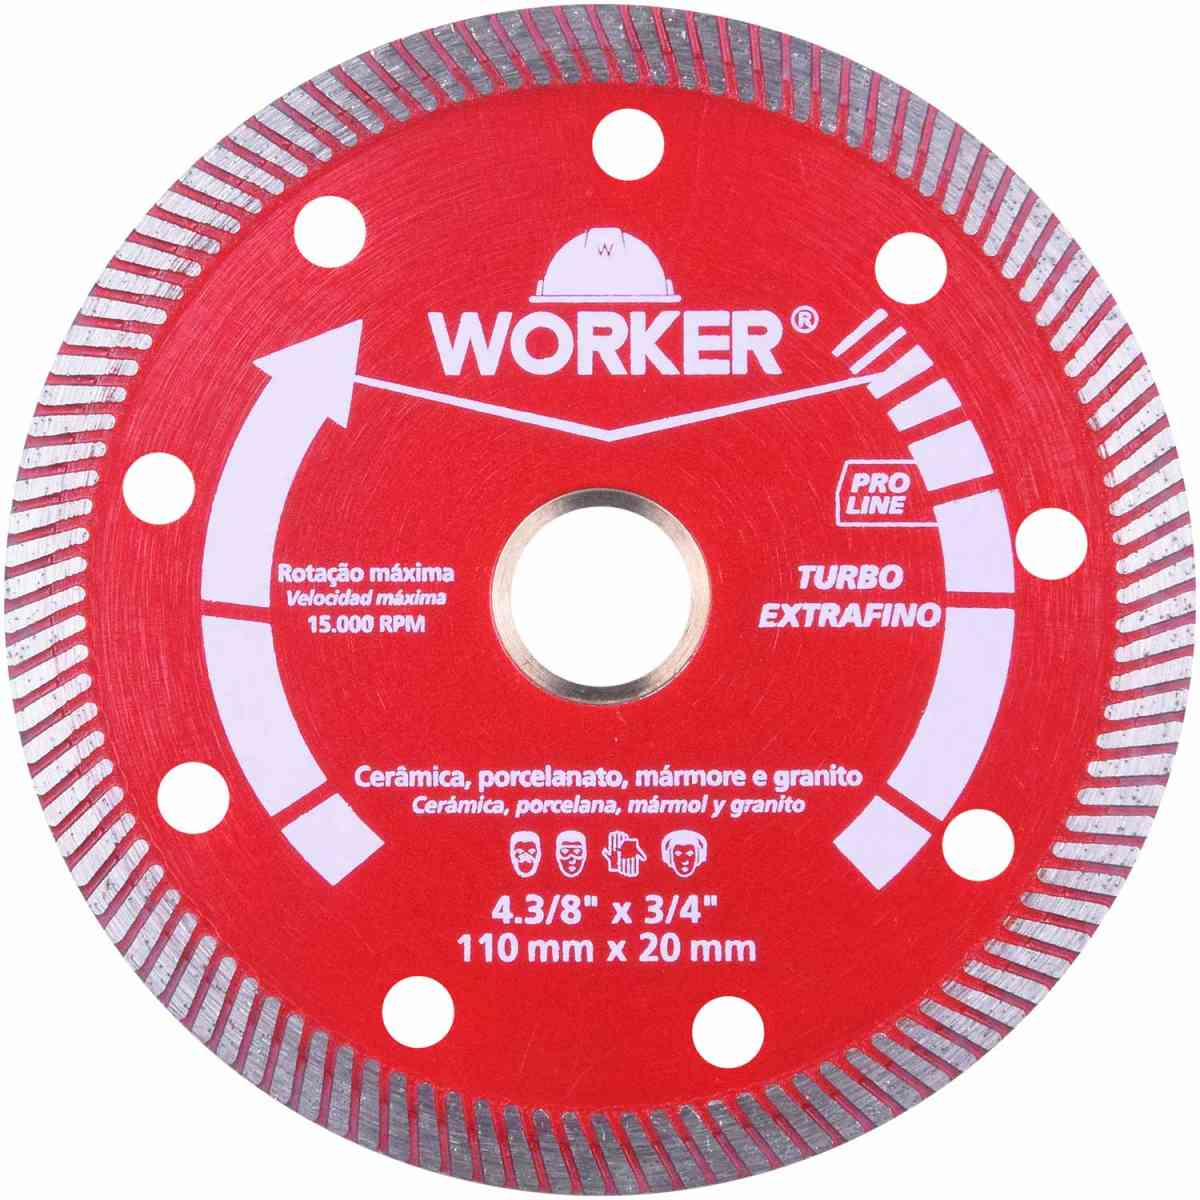 Disco Diamantado Turbo Extrafino 110 X 20Mm Worker